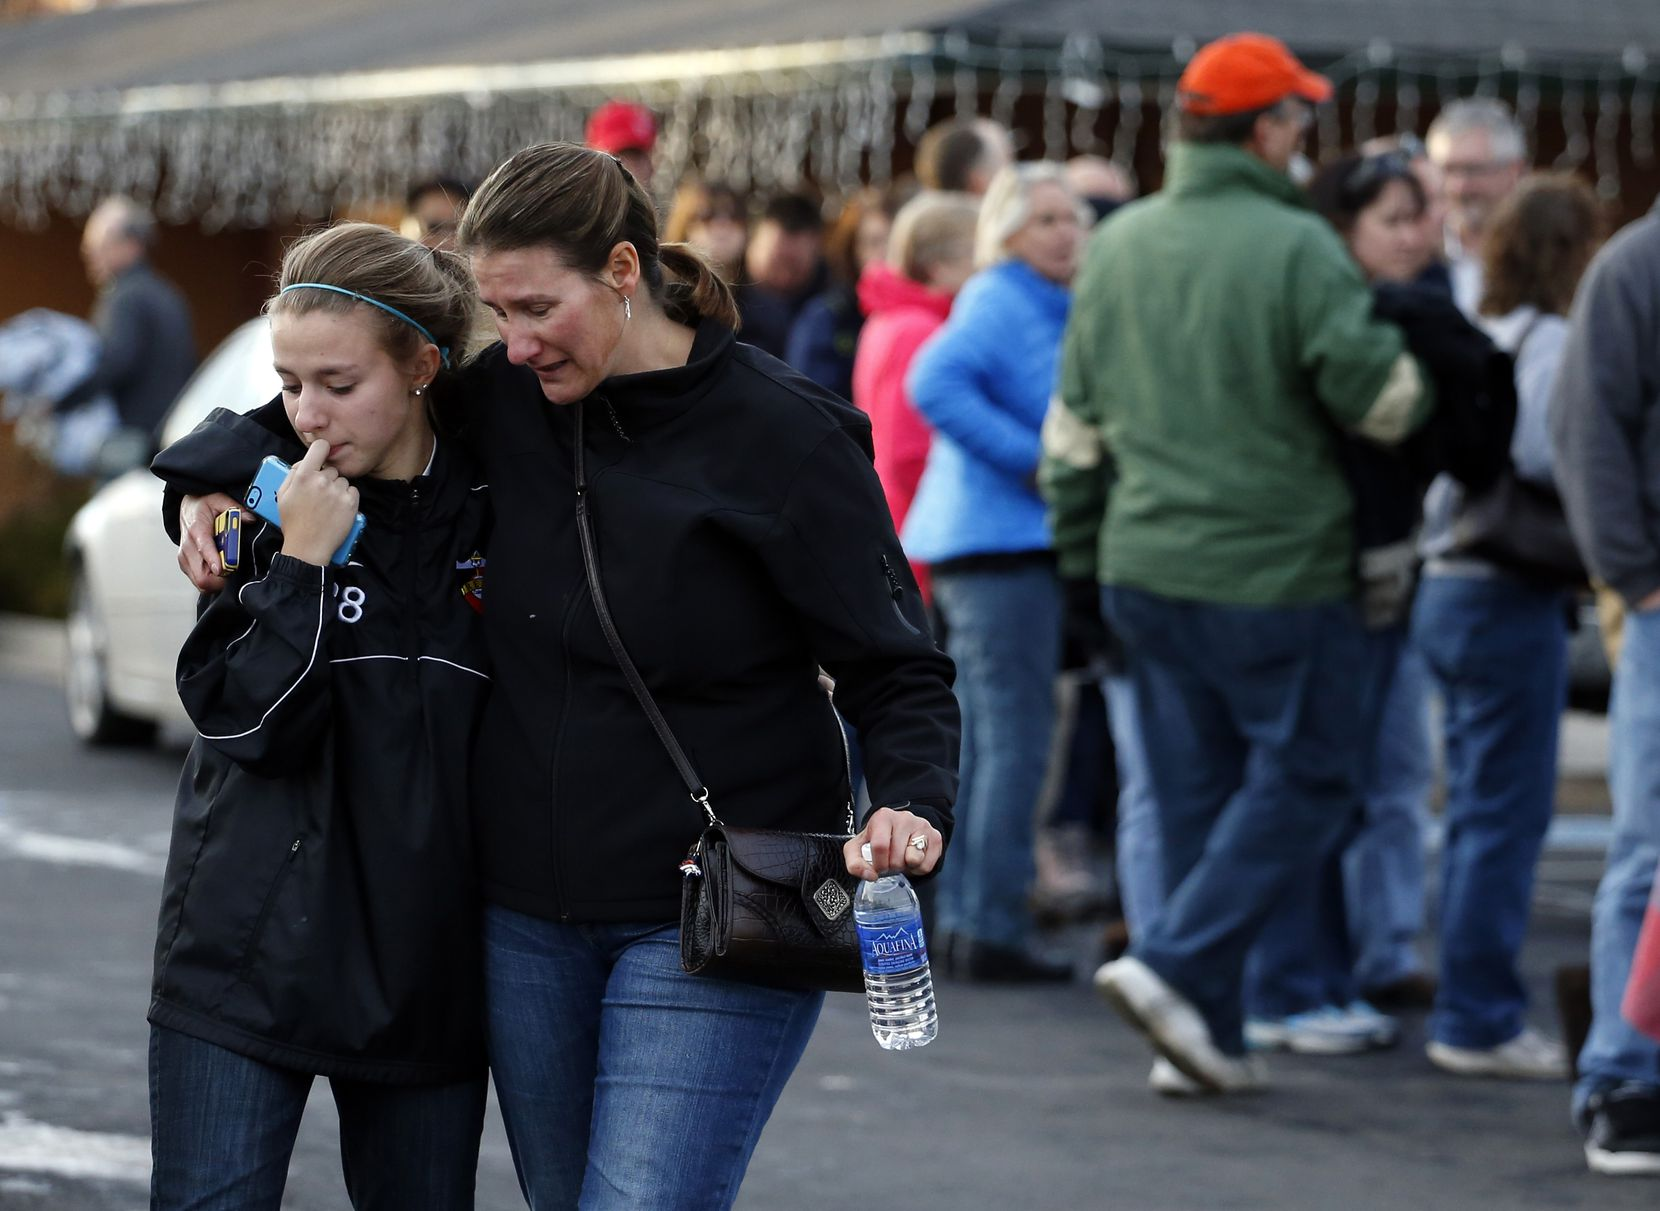 A parent picks up her daughter at a church where students from nearby Arapahoe High School were evacuated to after a shooting on the Centennial, Colo., campus Friday, Dec. 13, 2013. Arapahoe County Sheriff Grayson Robinson said the shooter shot two others at the school, before apparently killing himself. (AP Photo/Brennan Linsley)